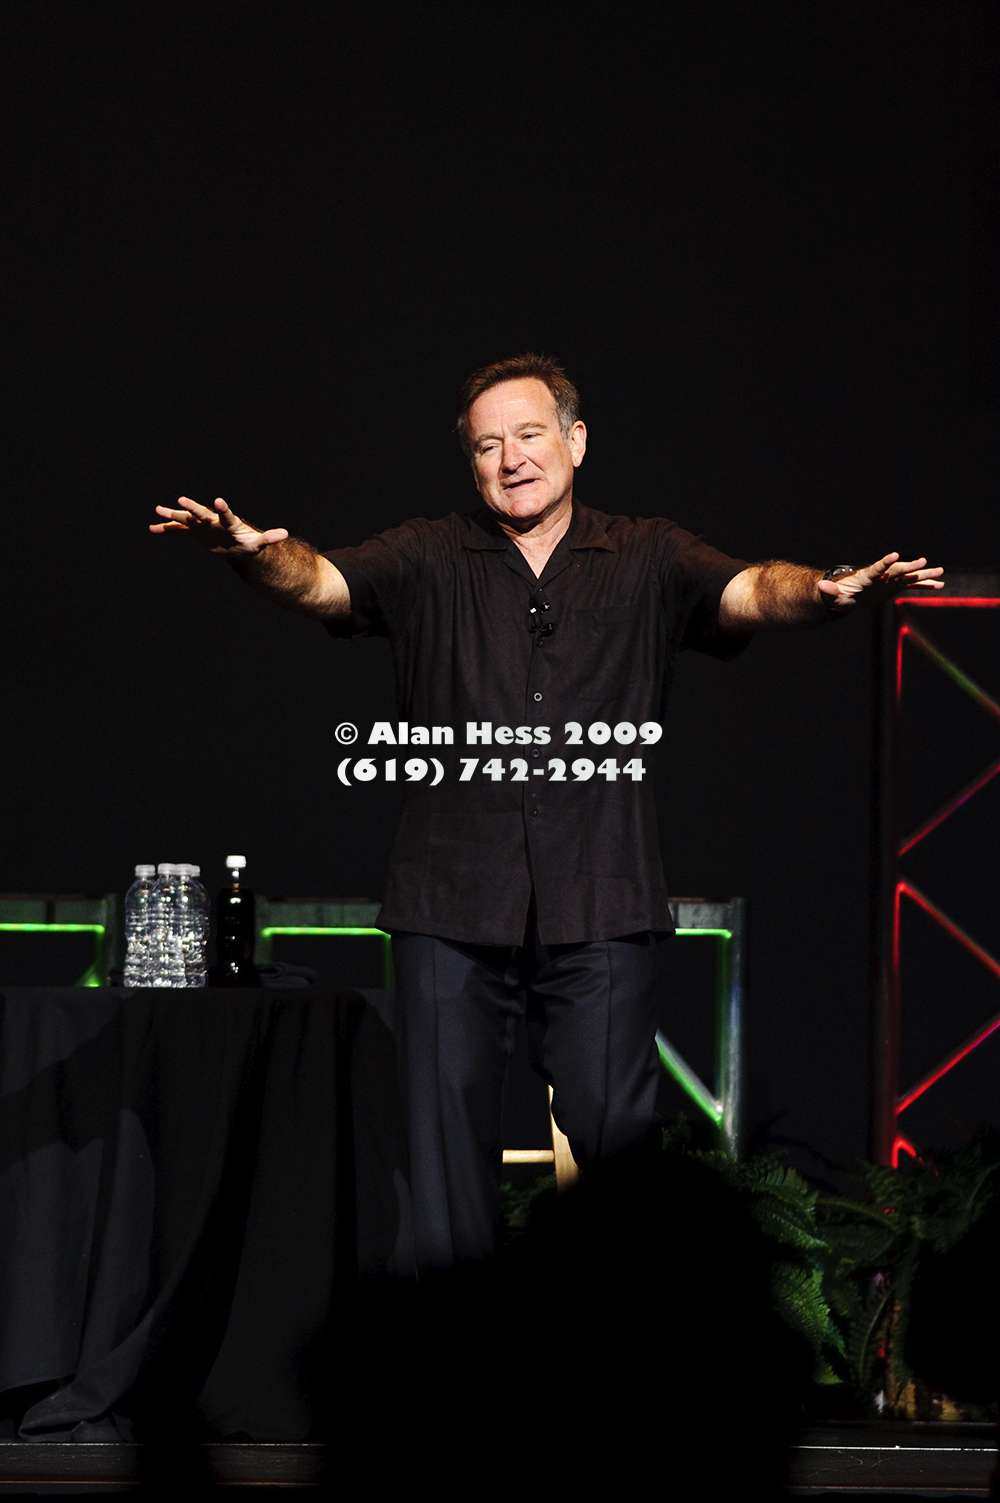 Tour Dates Robin Williams 2011